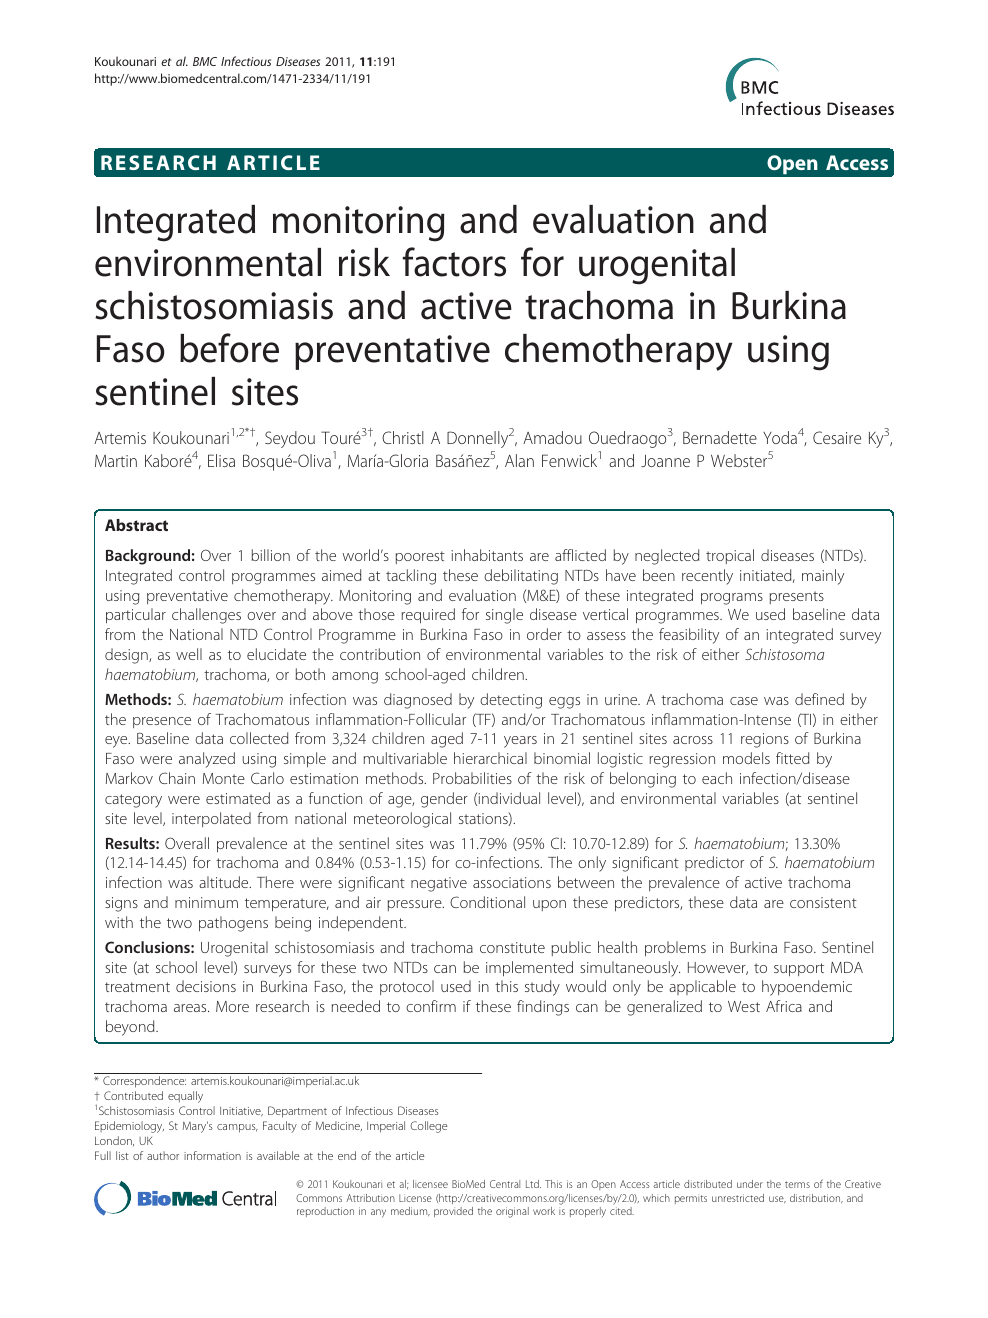 Integrated monitoring and evaluation and environmental risk